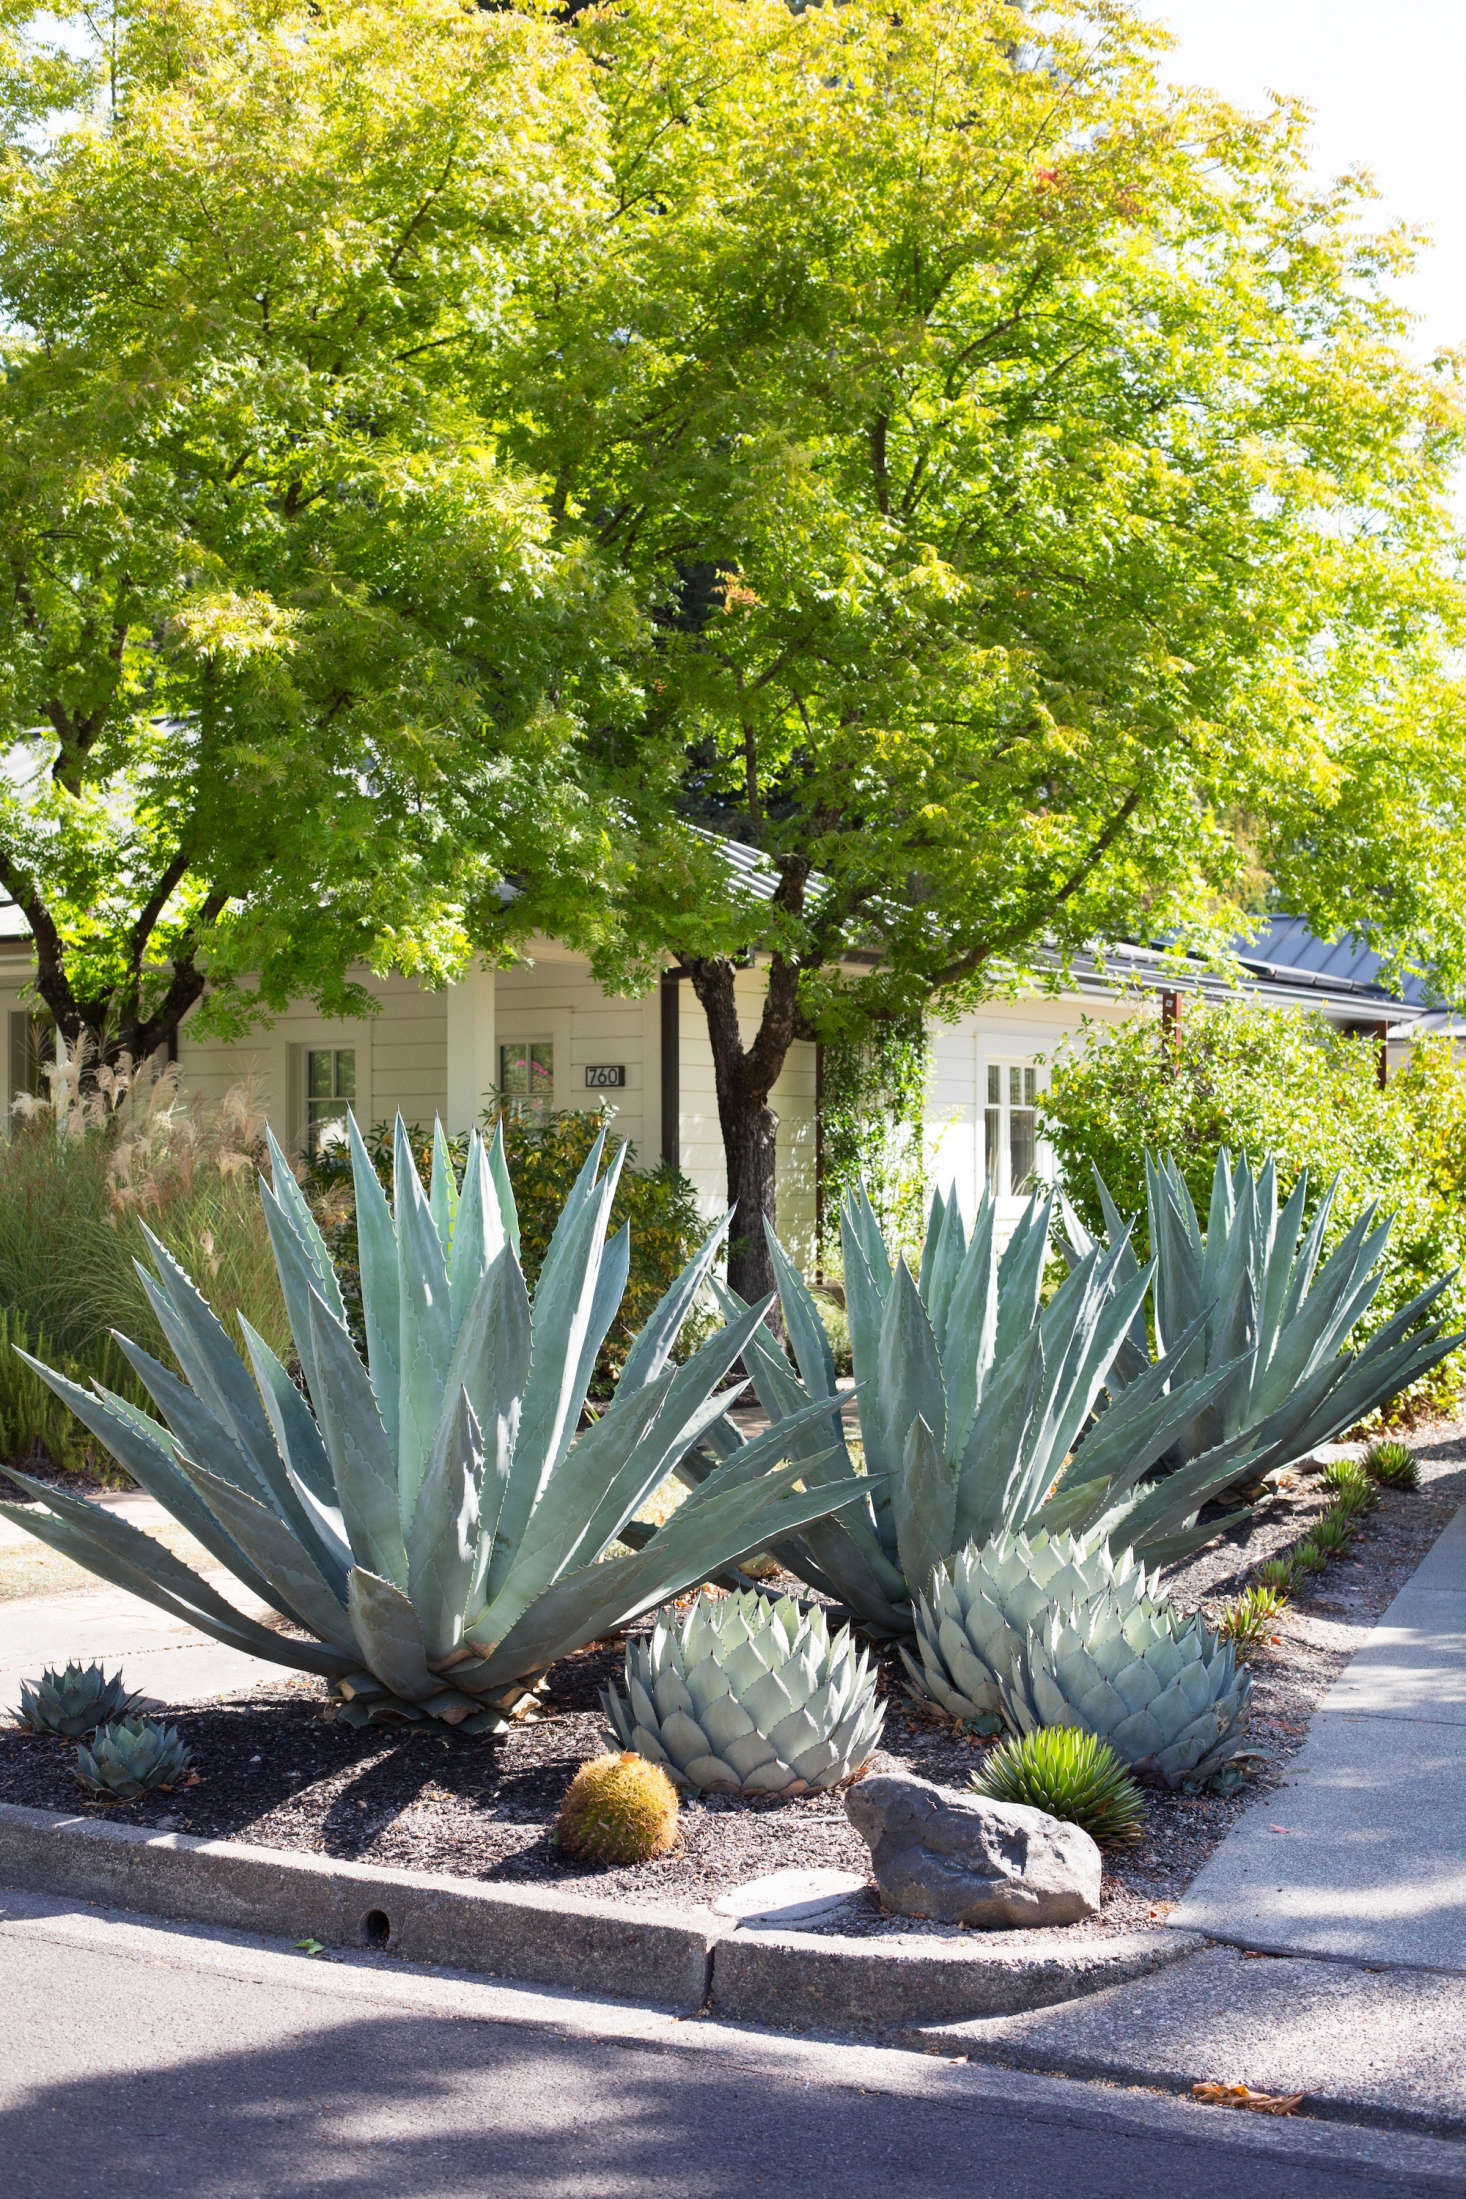 Alongside the driveway, Clay planted a low-water succulents garden to lend structure and texture to the front yard.